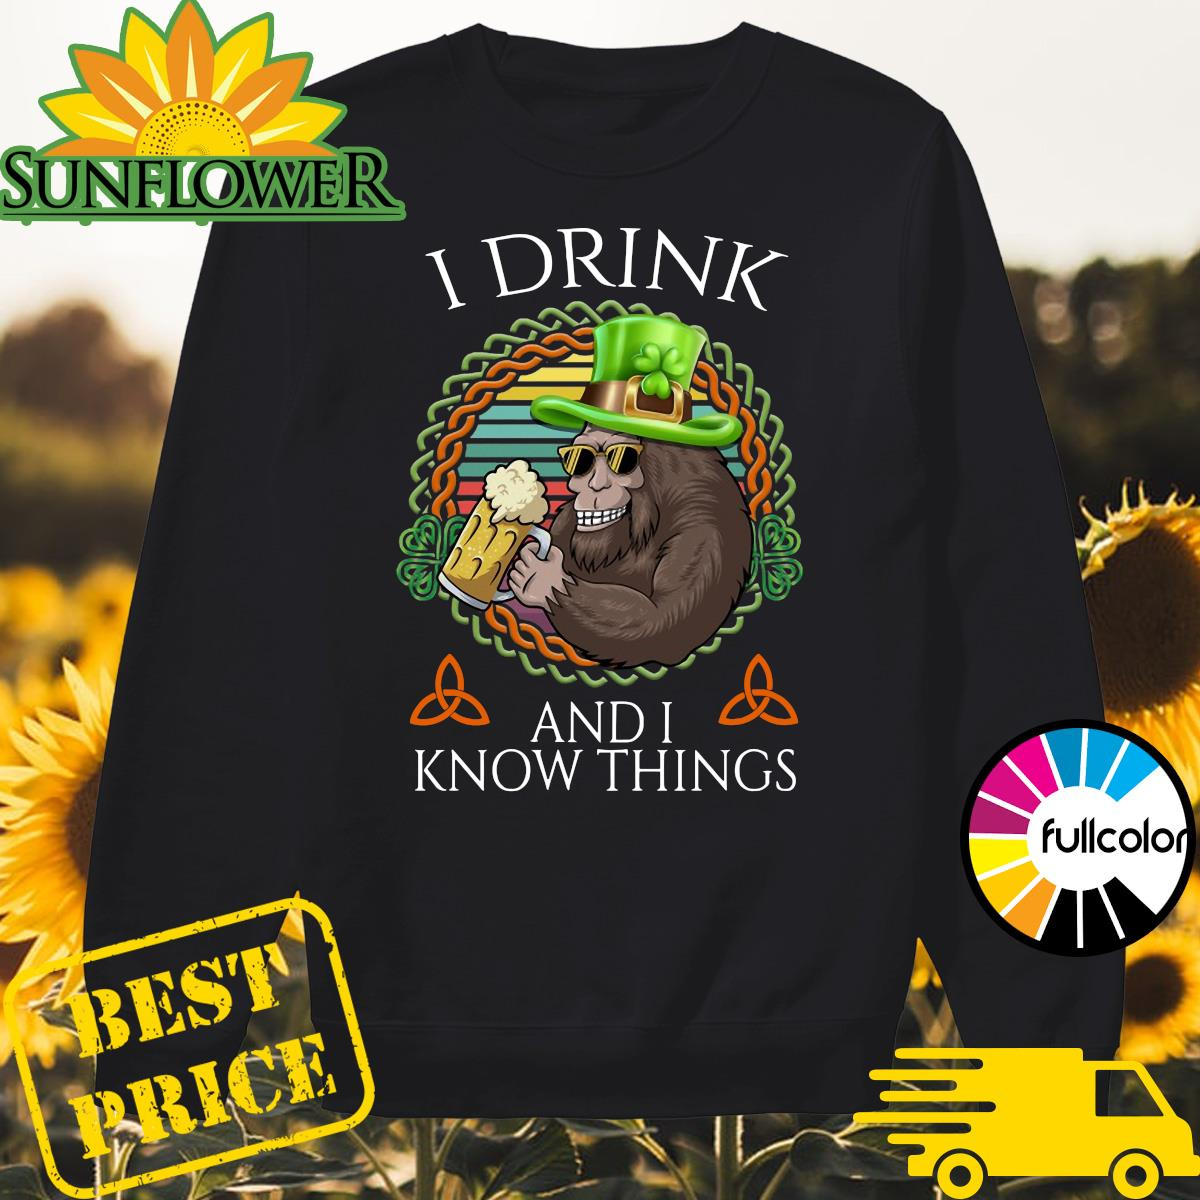 Bigfoot Drink Beer And I Know Things St Patrick's Day 2021 Vintage Shirt Sweater